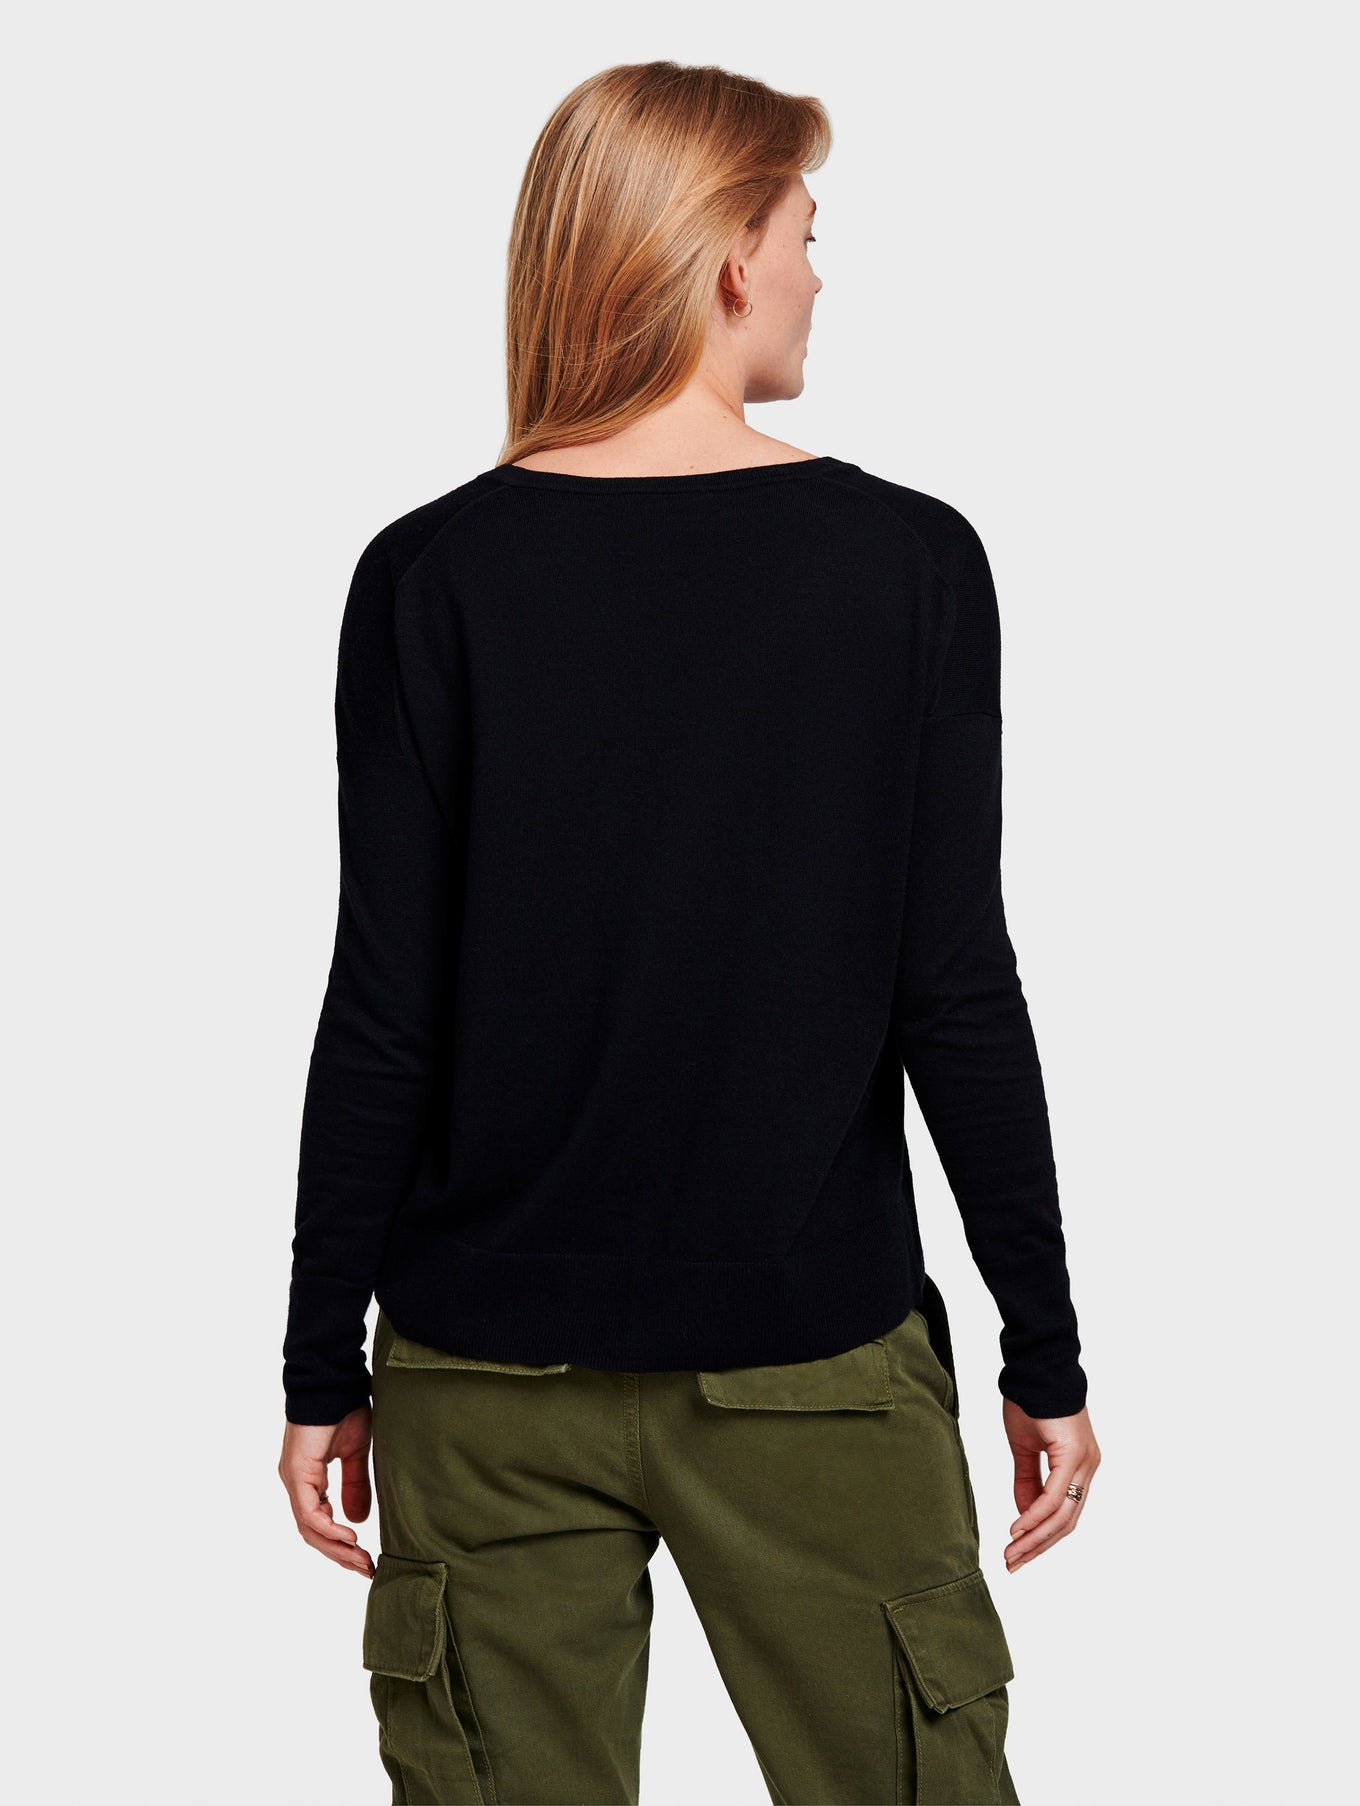 Drop Shoulder V Neck - Black - Image 3